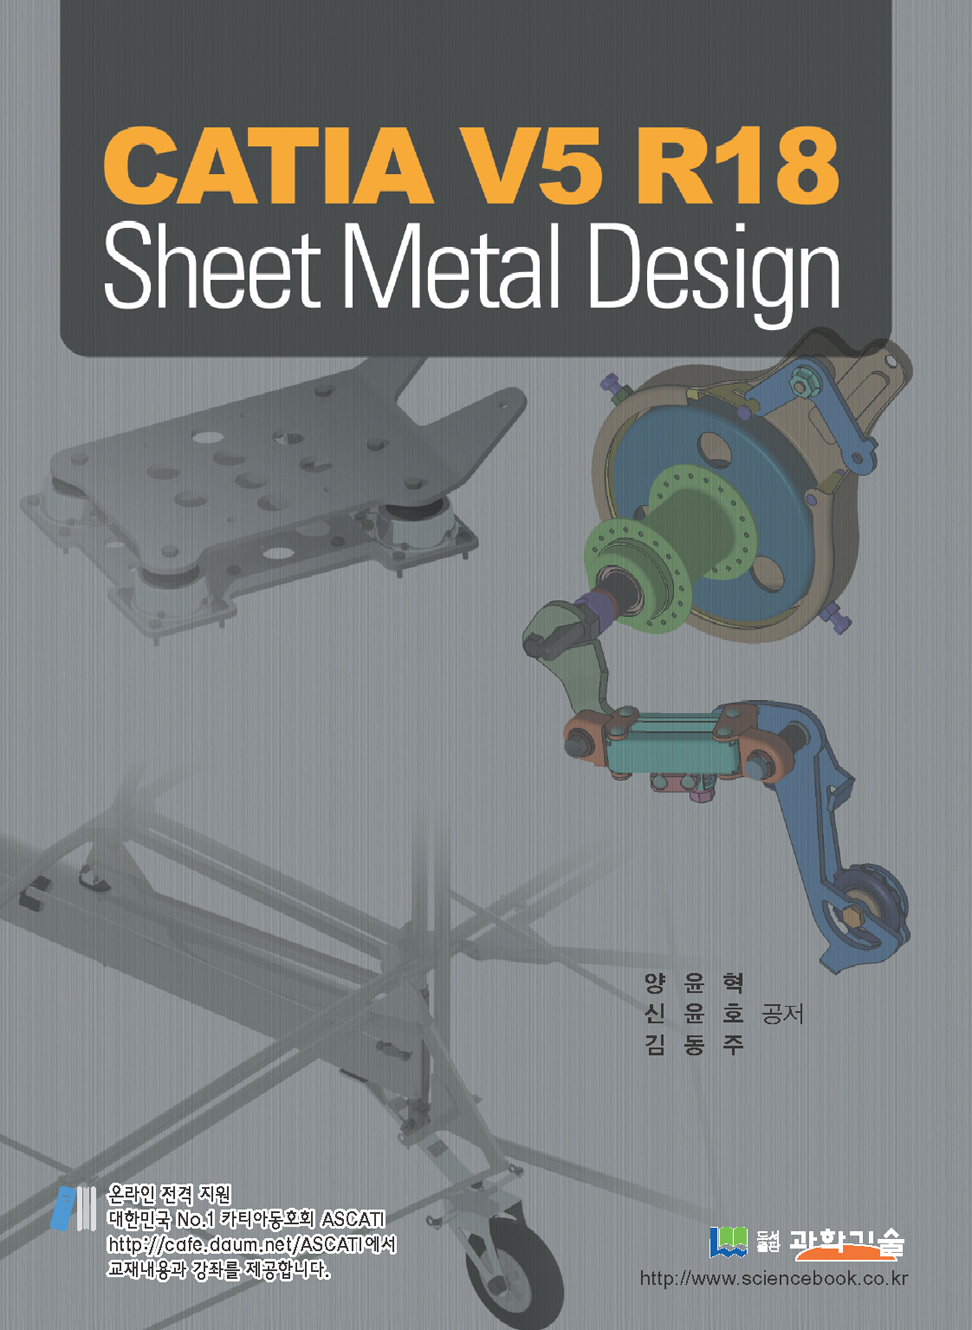 Catia V5 Sheet Metal Design Cad Cam Engineering Worldwide